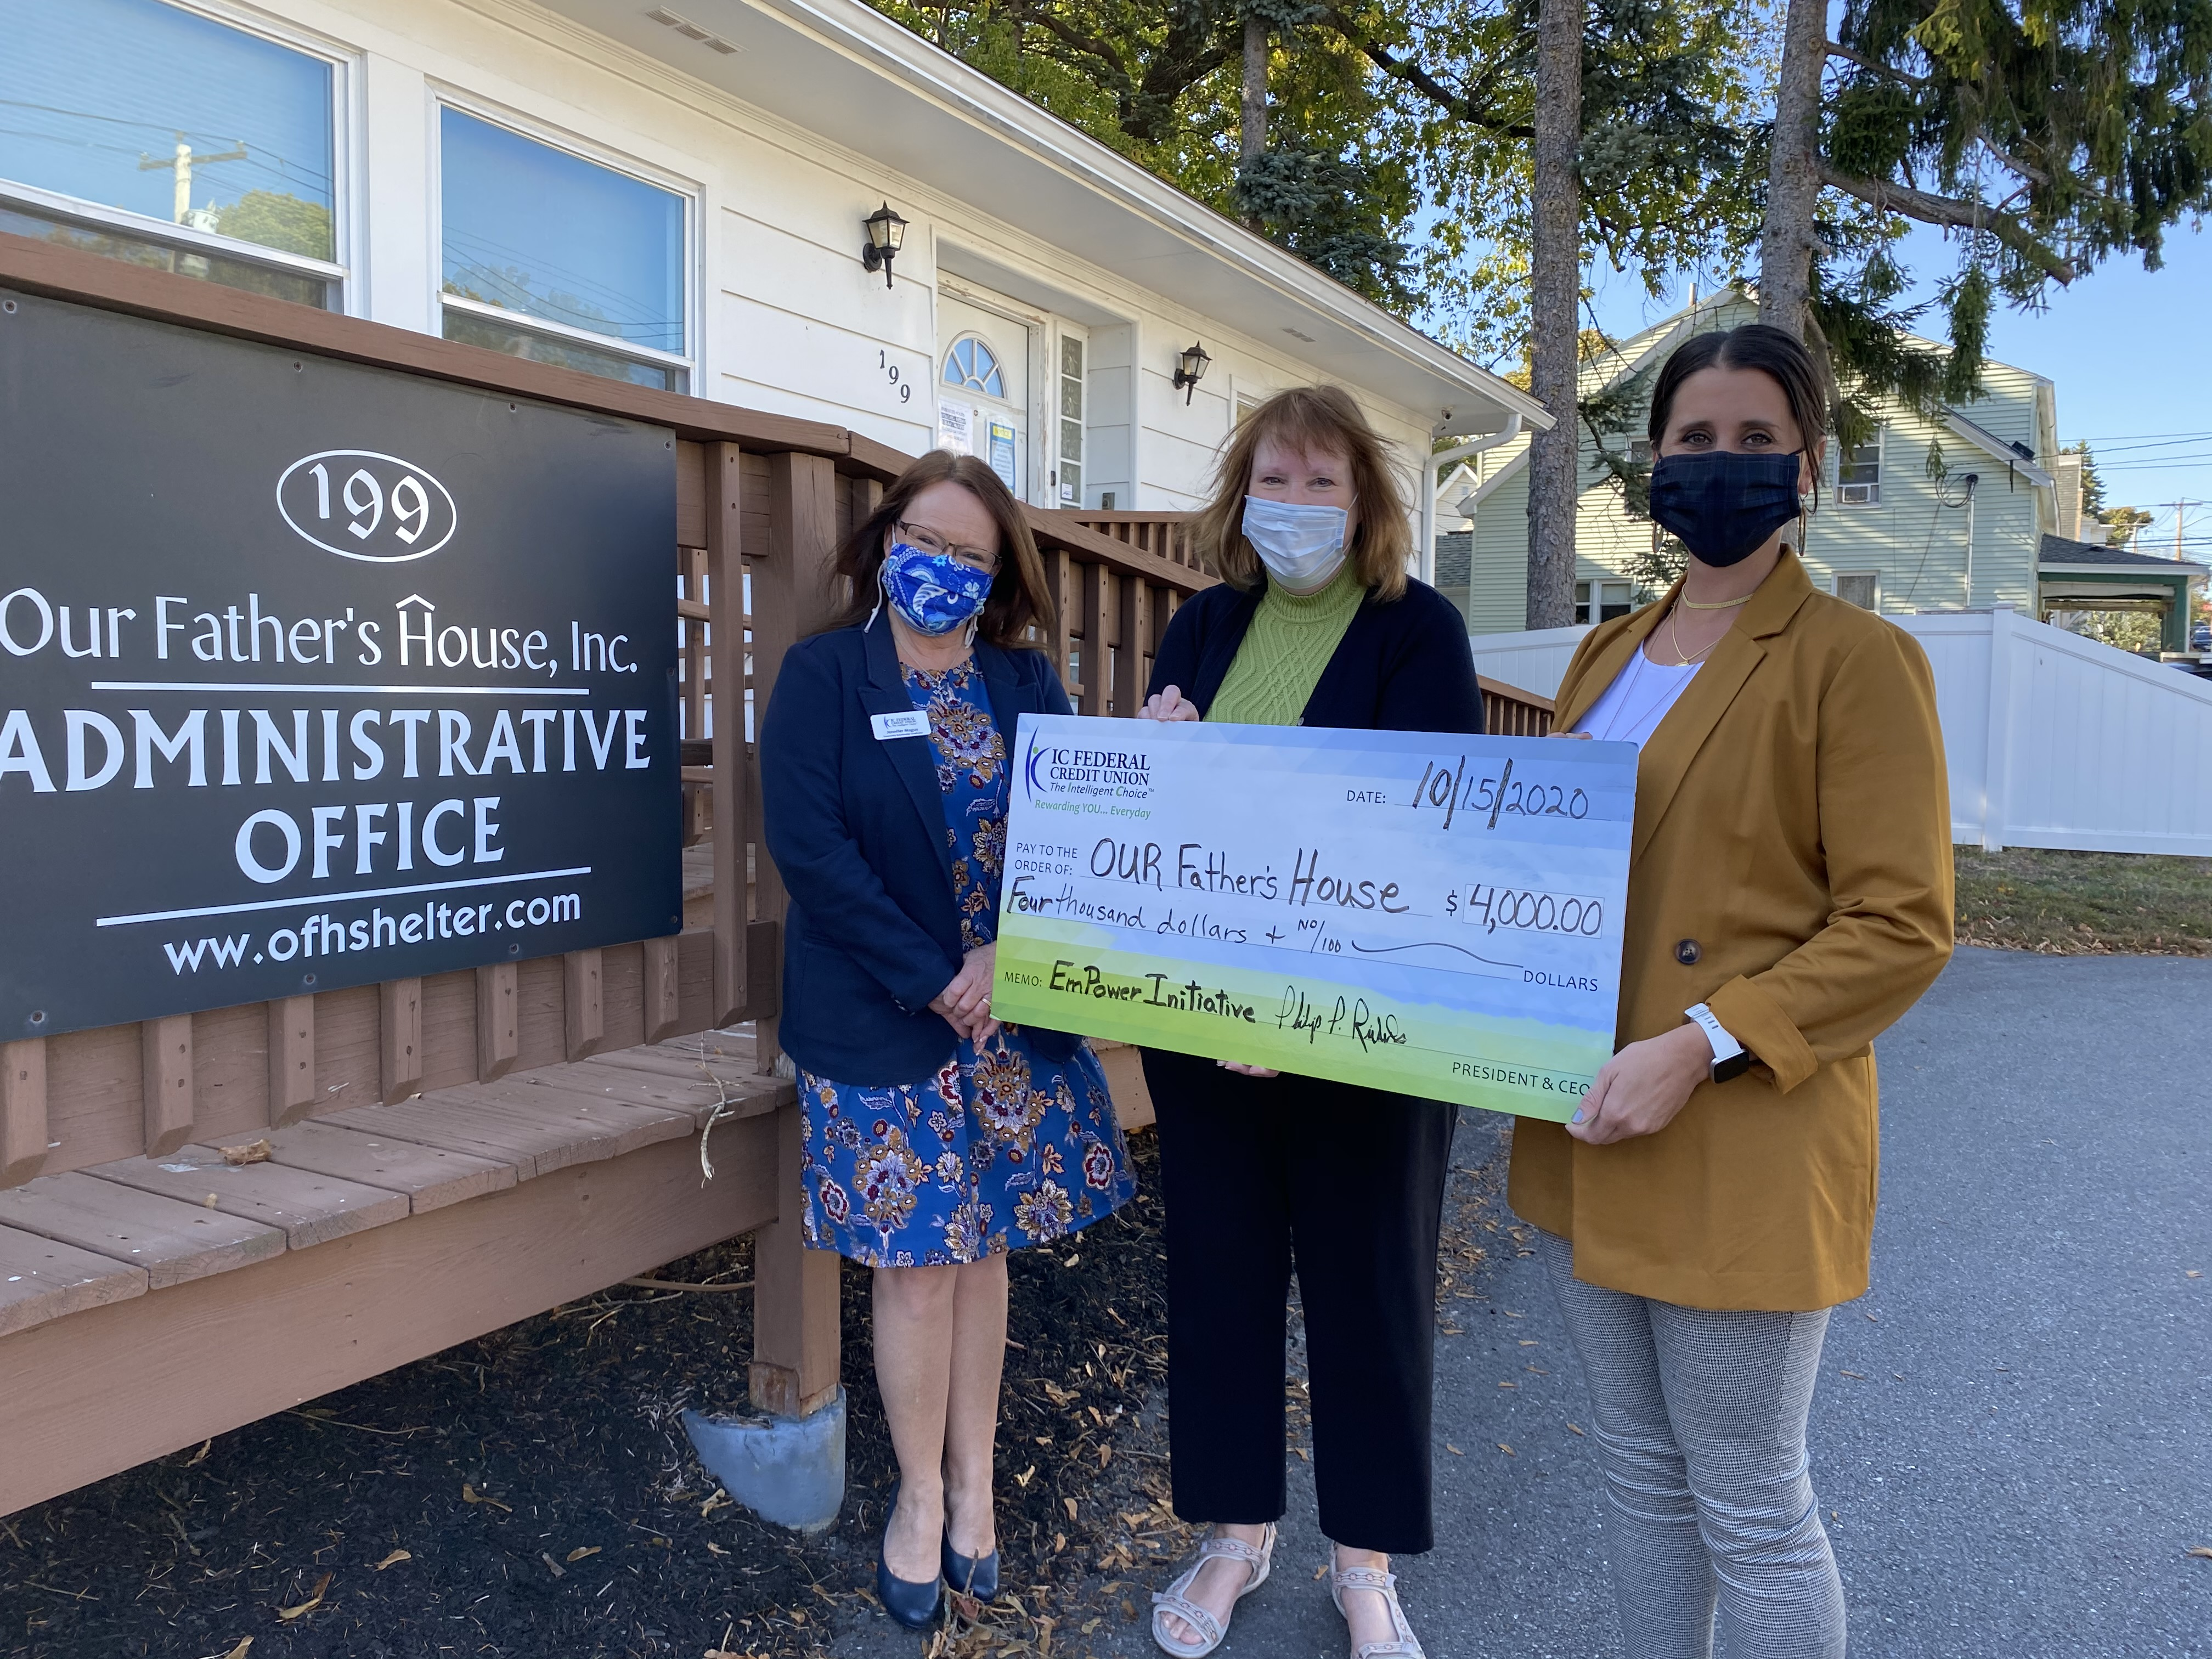 (l to r): Jennifer Maguy, Community Coordinator from IC; Judith Nest-Pasierb, Executive Director of Our Father's House; and Carolyn Perla, SVP of Retail & Marketing at IC